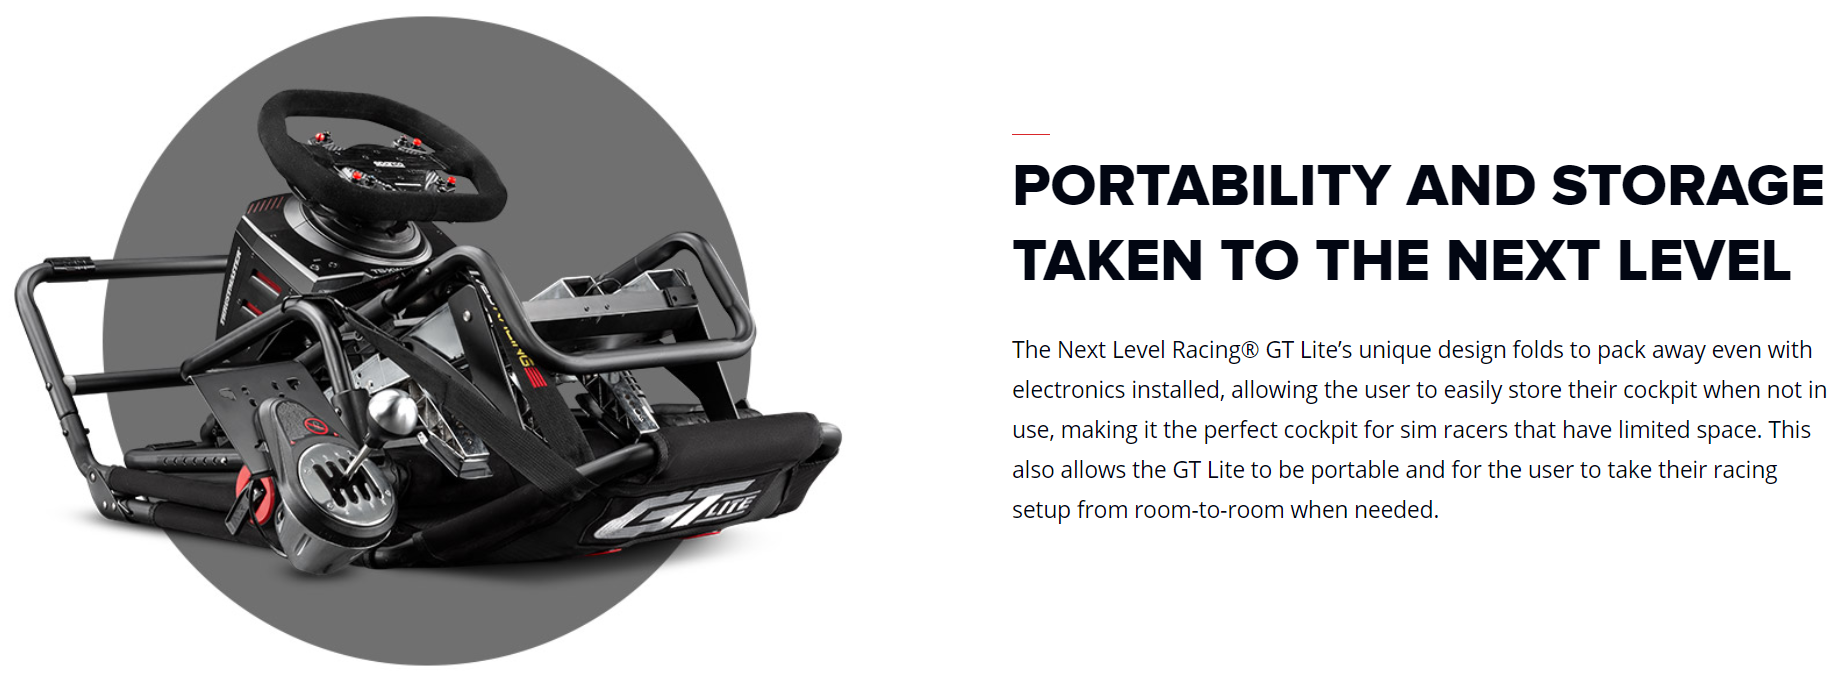 The Next Level Racing® GT Lite's unique design folds to pack away even with electronics installed, allowing the user to easily store their cockpit when not in use, making it the perfect cockpit for sim racers that have limited space. This also allows the GT Lite to be portable and for the user to take their racing setup from room-to-room when needed.